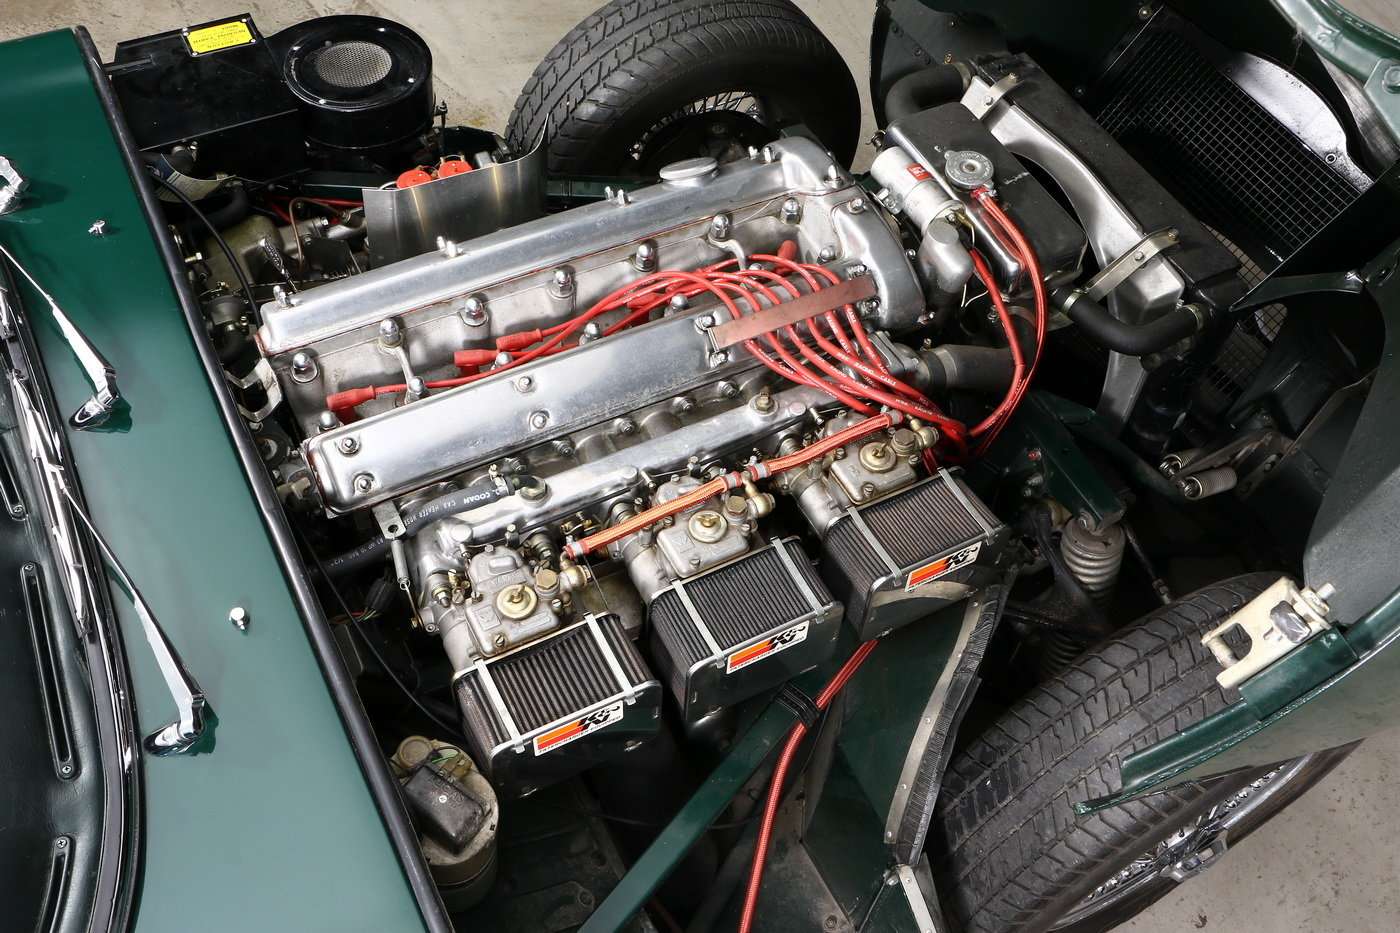 1965 Jaguar E-Type 1 Series 4.2 ltr Roadster For Sale (picture 6 of 6)